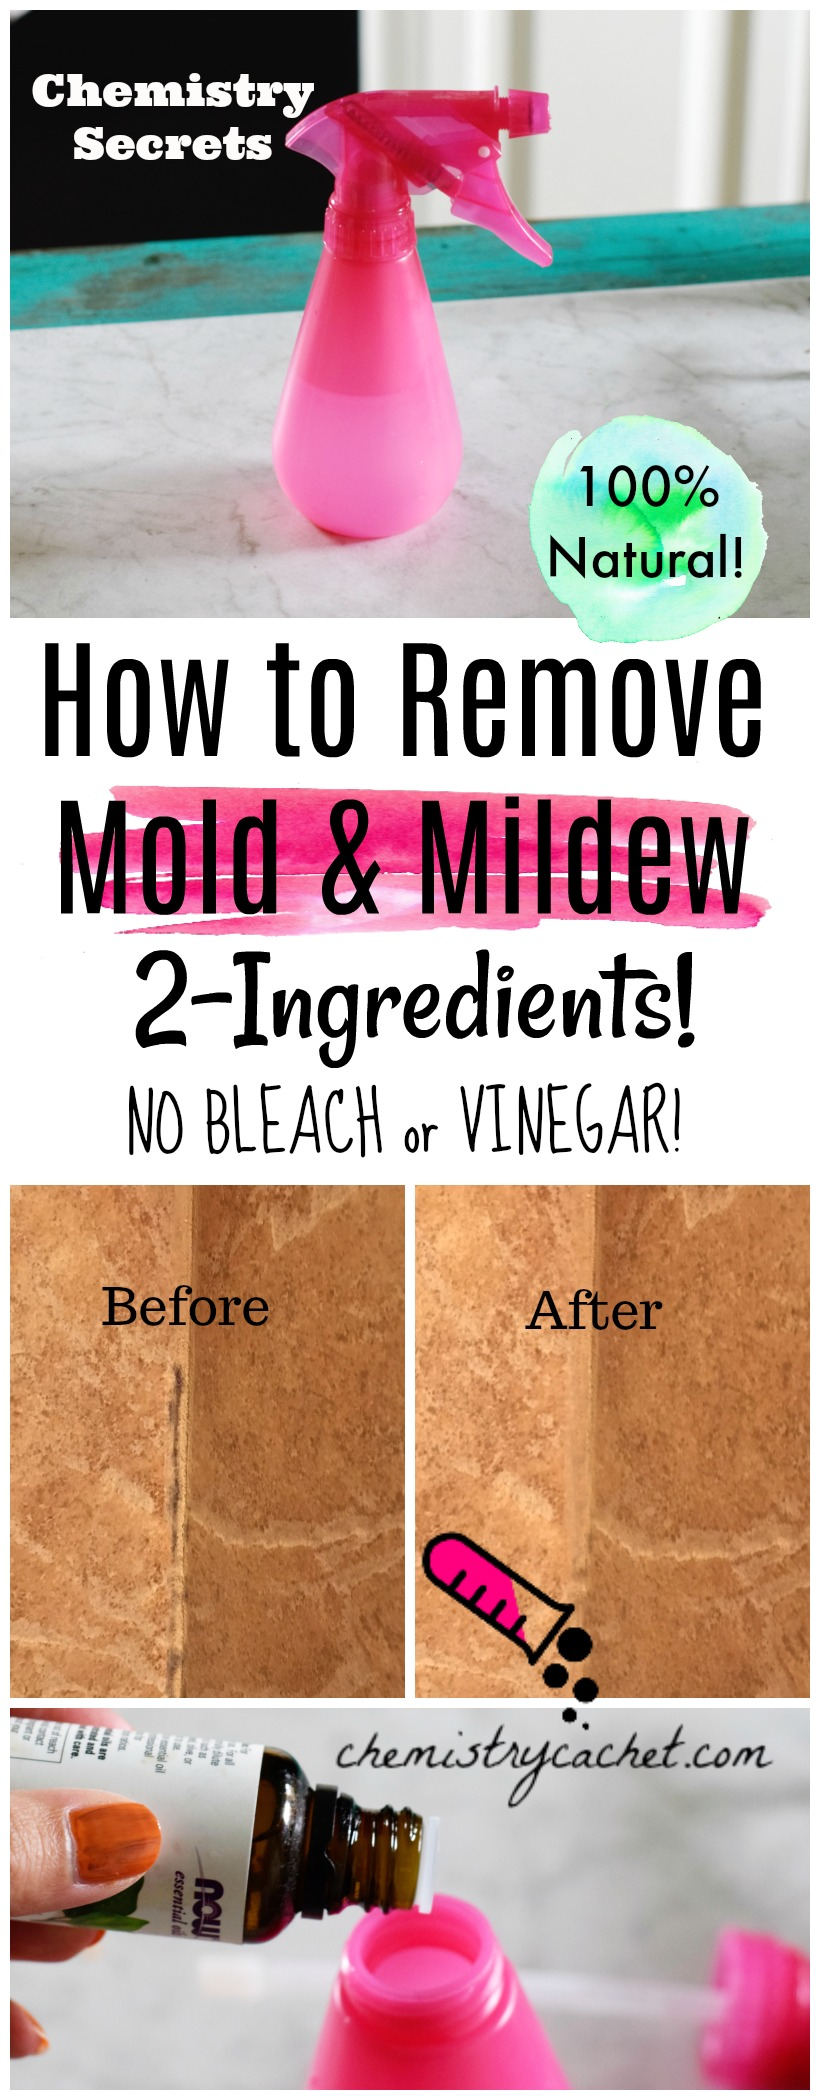 The Best Way To Remove Mold Amp Mildew With 2 Ingredients